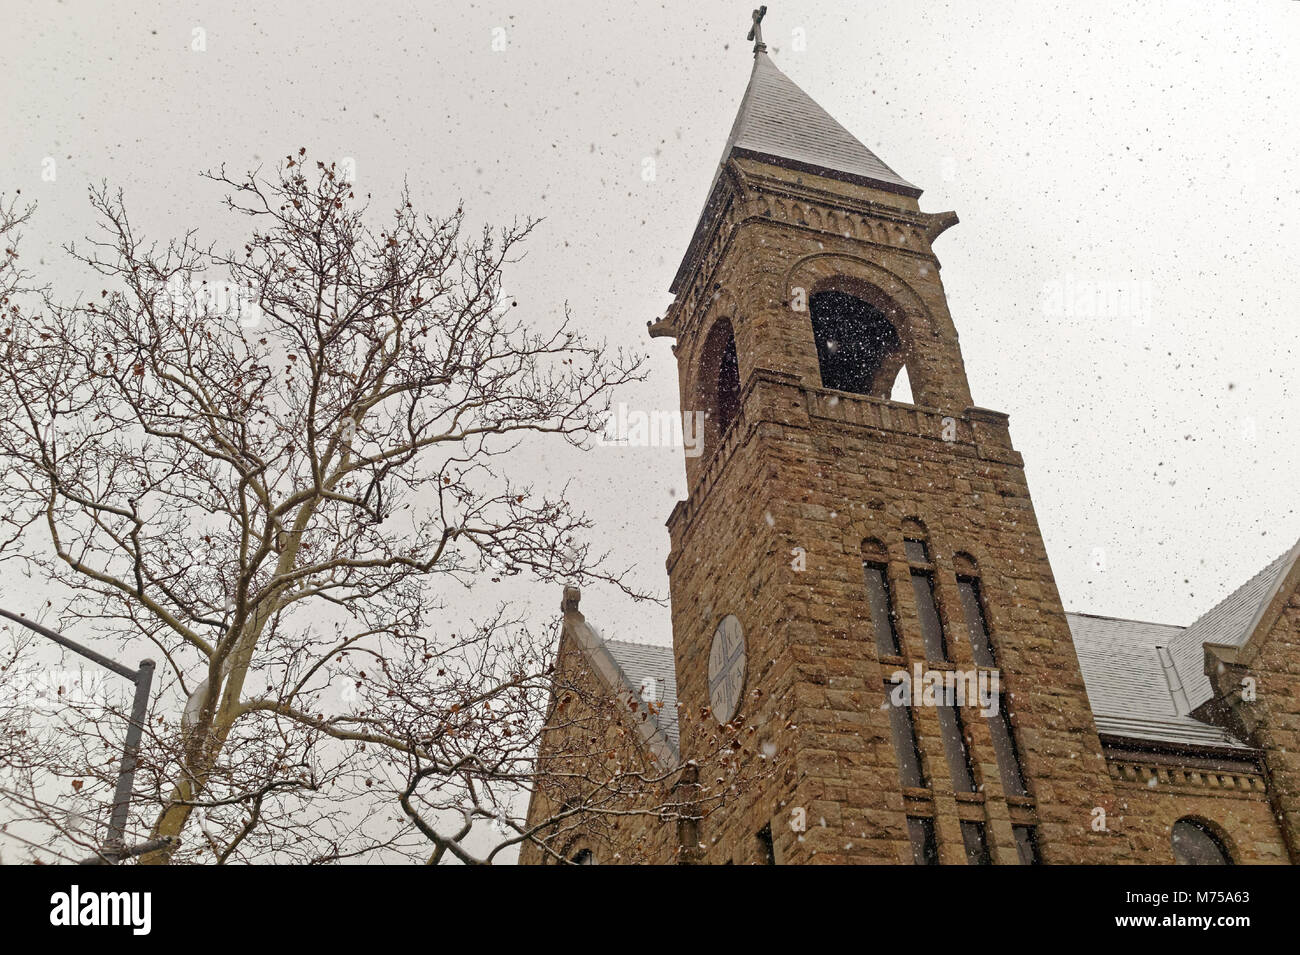 Stone church steeple in Brooklyn, New York during a light snowfall. - Stock Image